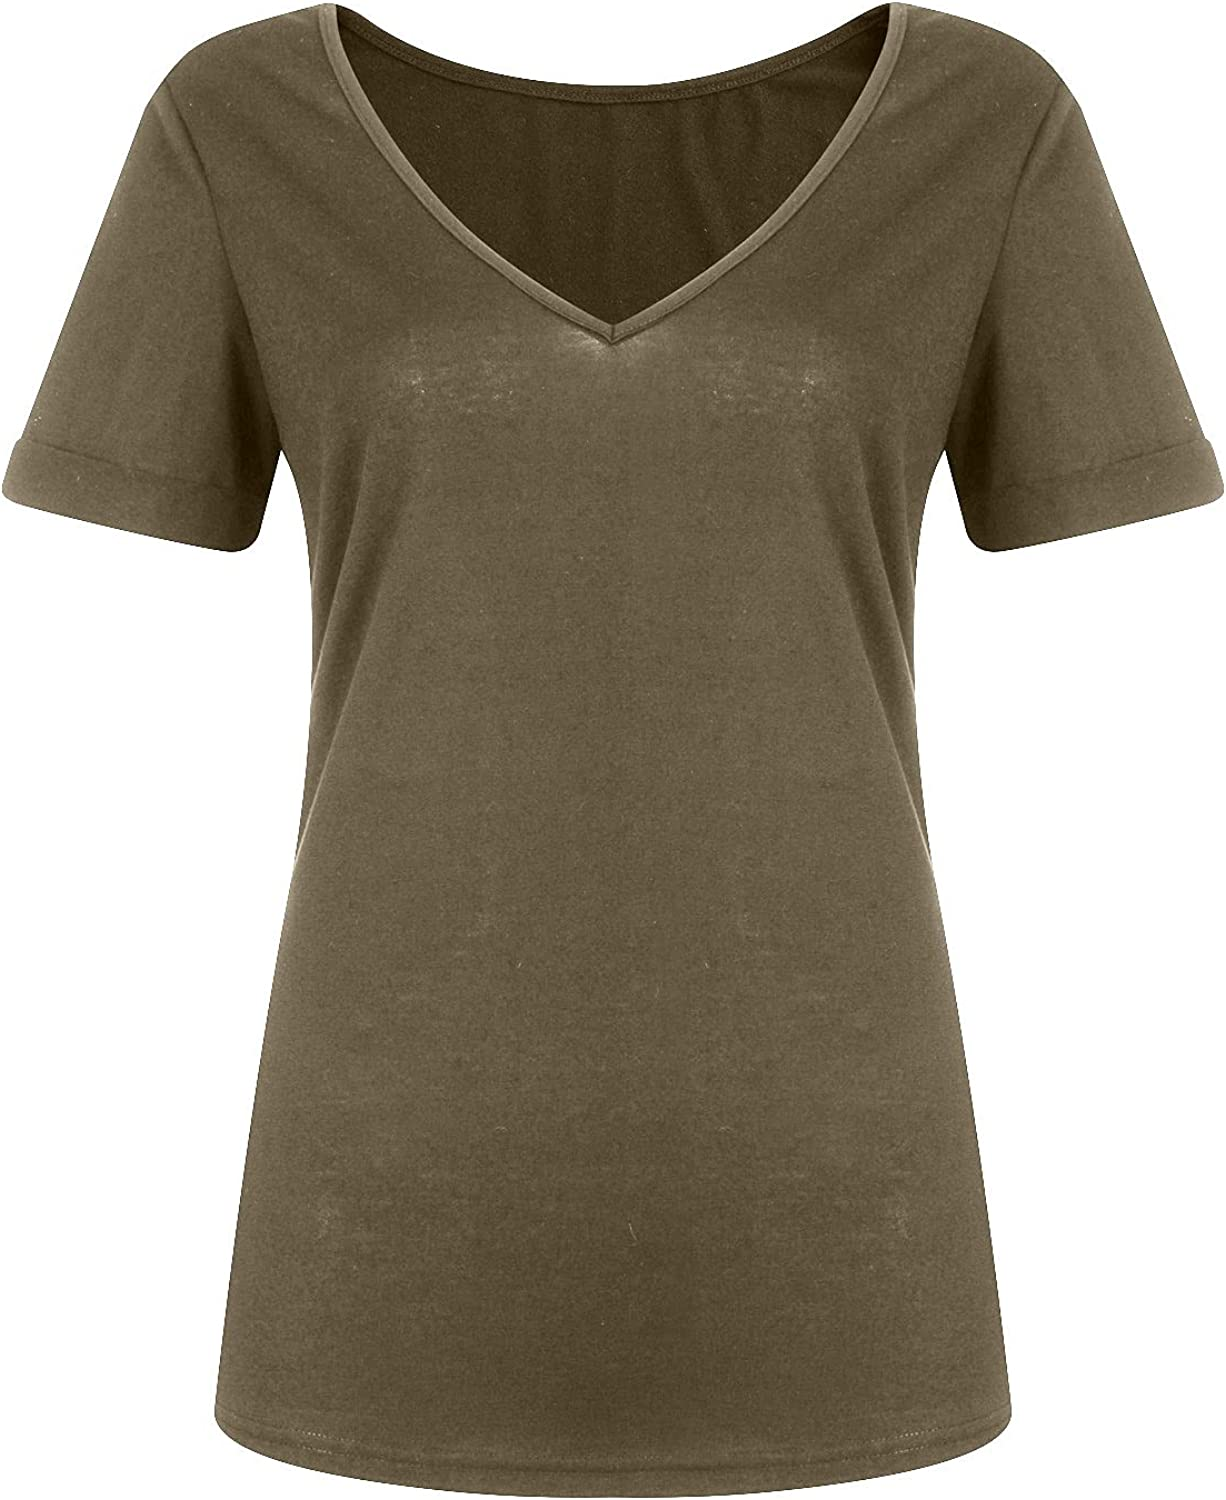 VonVonCo Pullover Sweaters for Women Loose Camisole Tank Tops Pure Color Casual Deep V-Neck Sexy Short-Sleeved T-Shirt